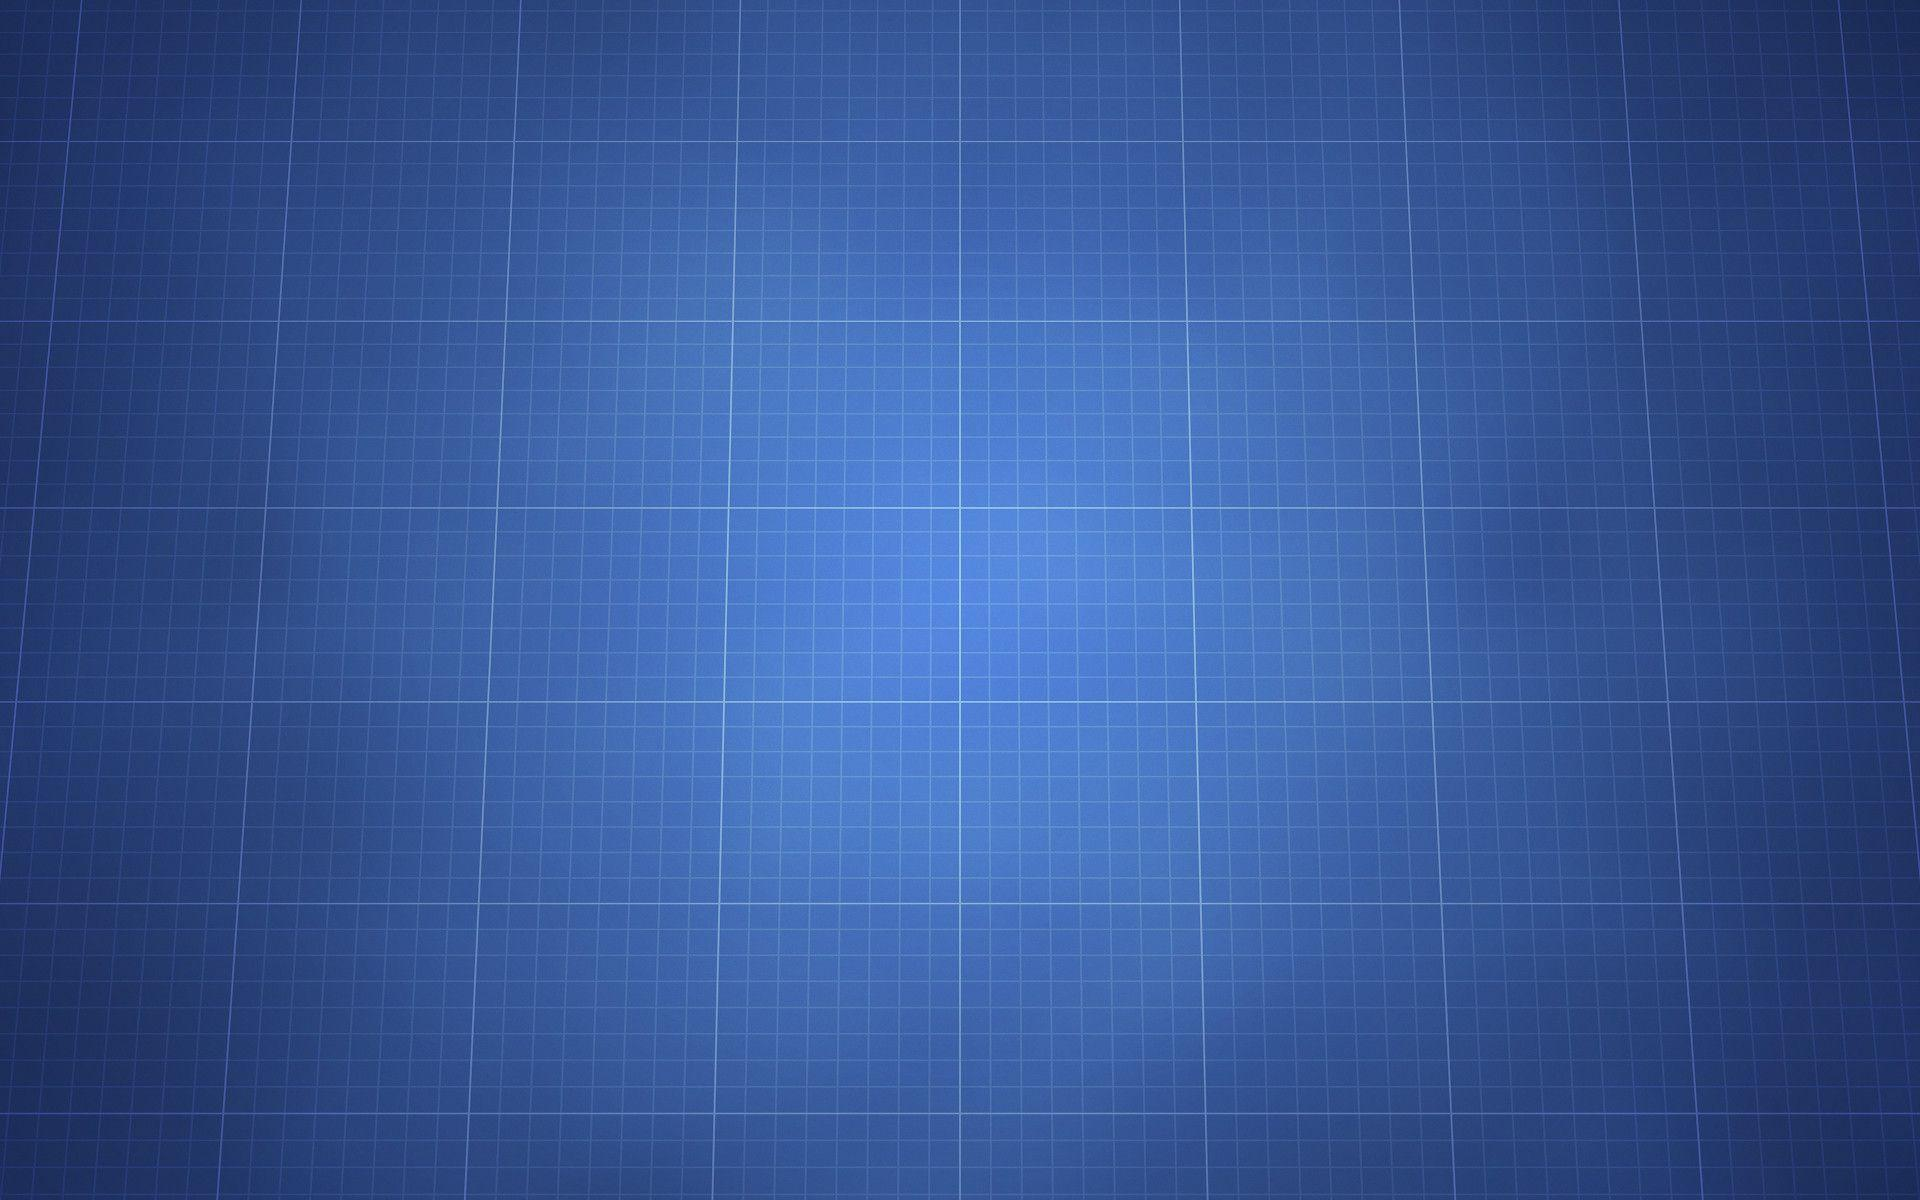 Blue print wallpapers wallpaper cave most downloaded blueprint wallpapers full hd wallpaper search malvernweather Gallery